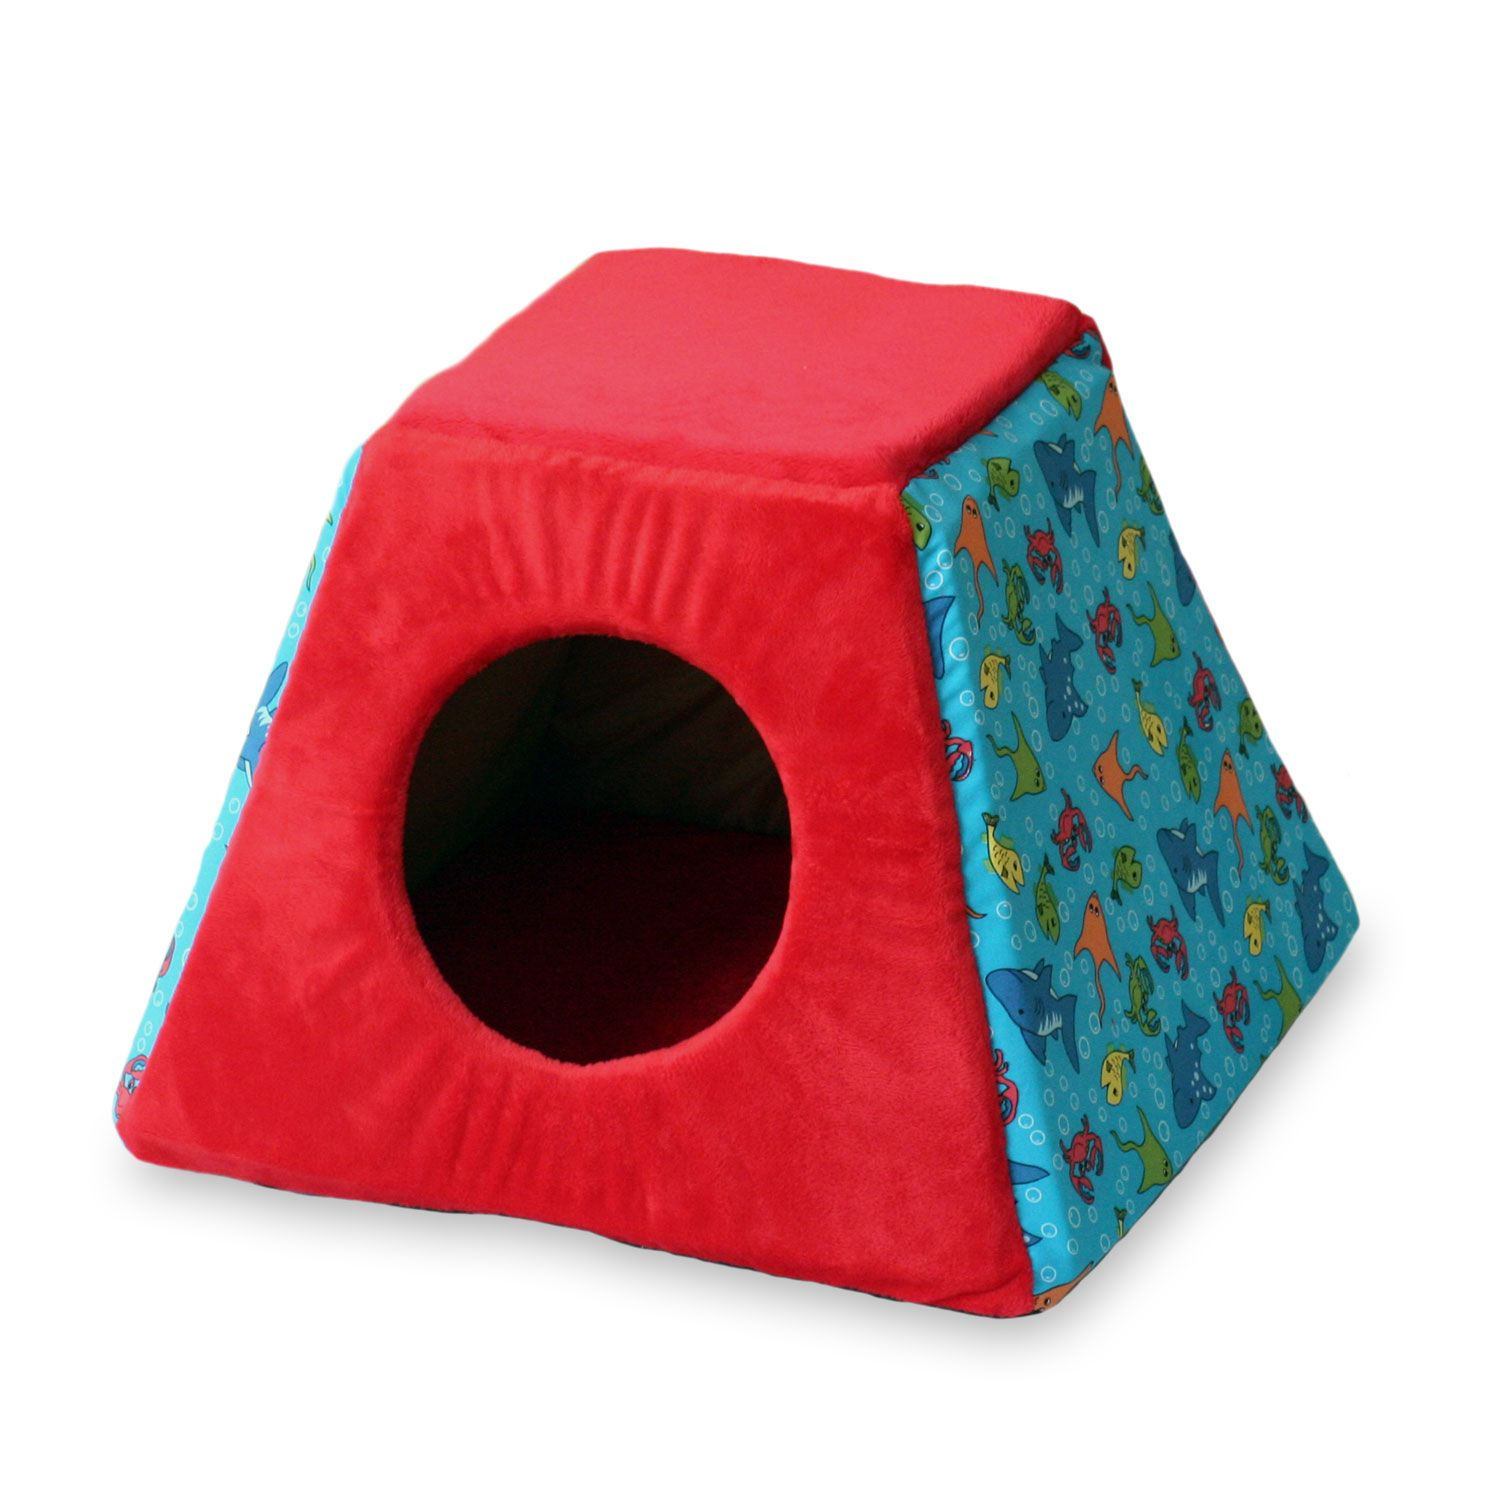 K&H Fish Print Thermo-Kitty Cabin Heated Cat Bed in Red | =^..^= for ...